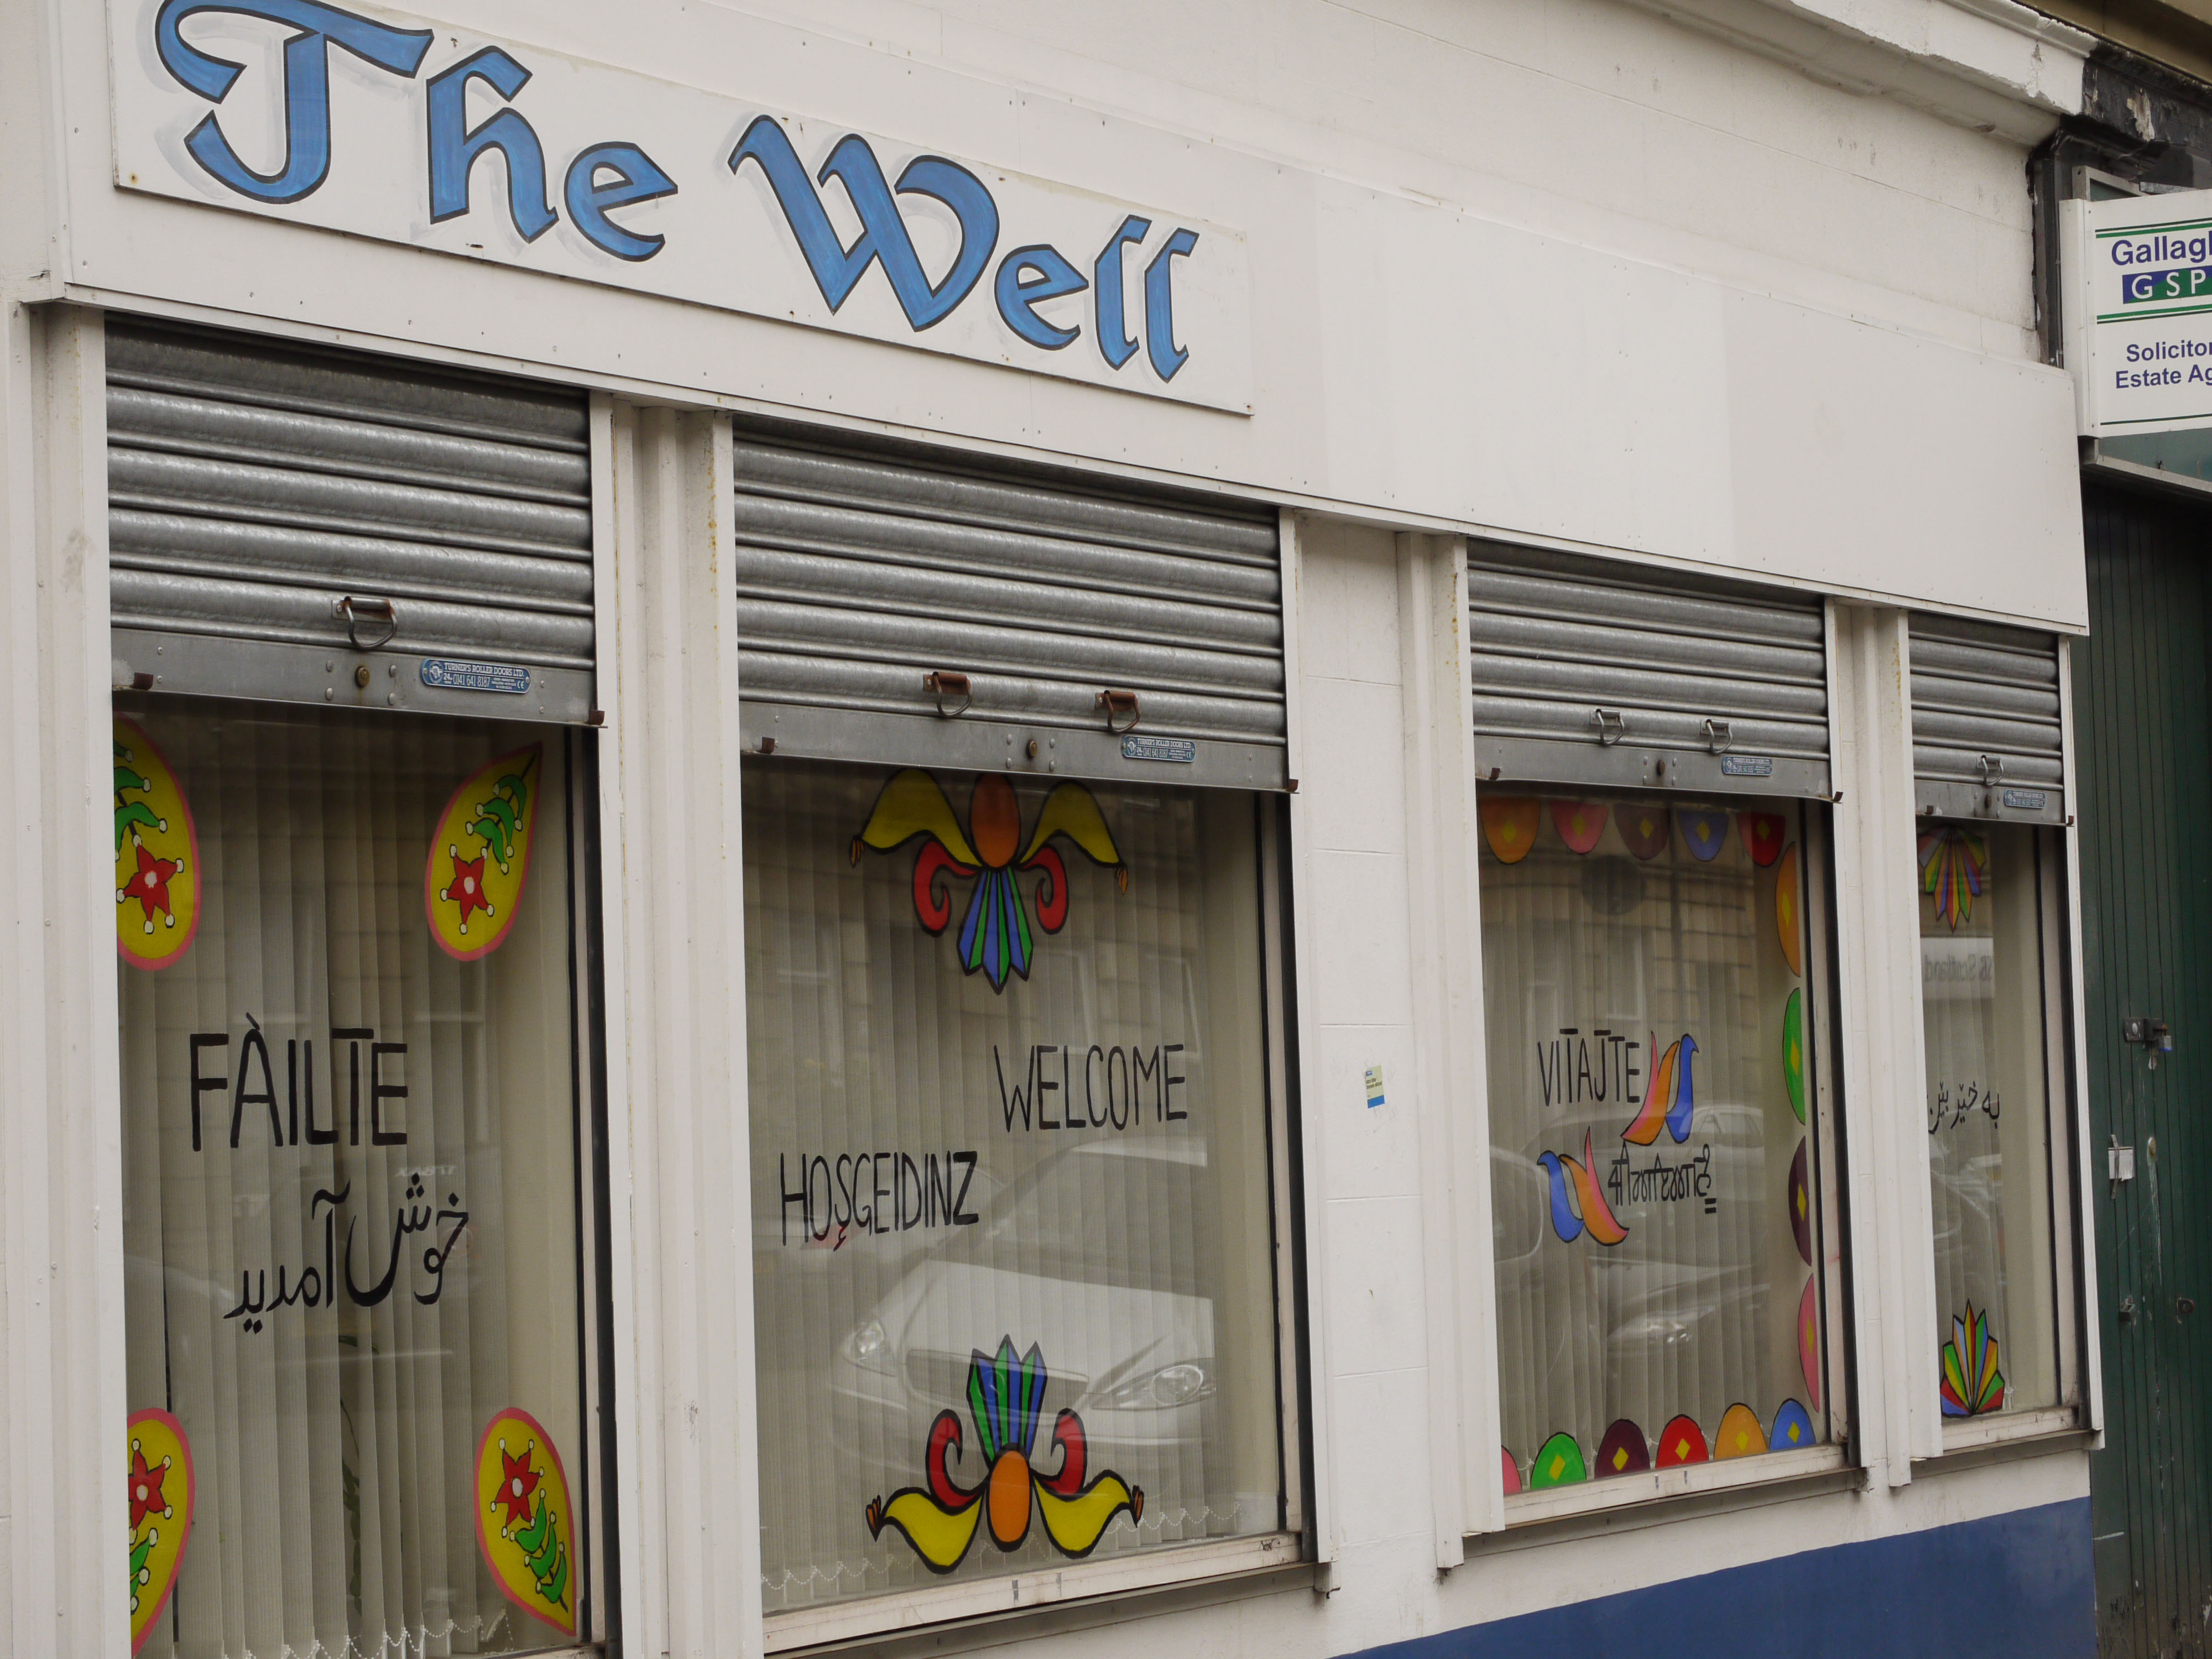 The Well Front